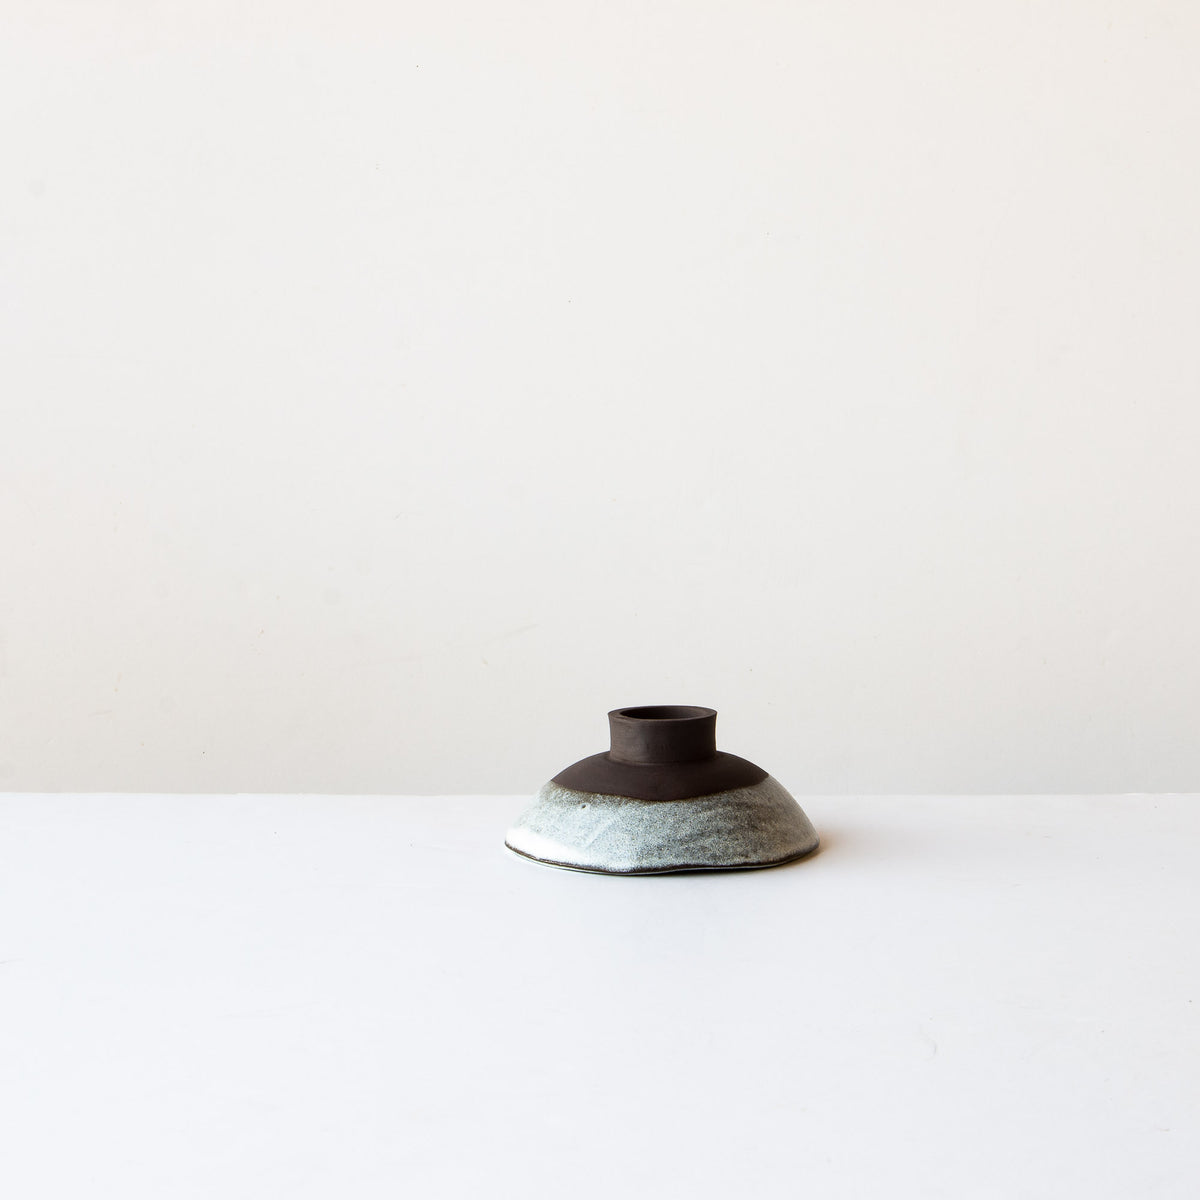 Upside Down Stoneware Small Miso Bowl - Grey & White - Sold by Chic & Basta